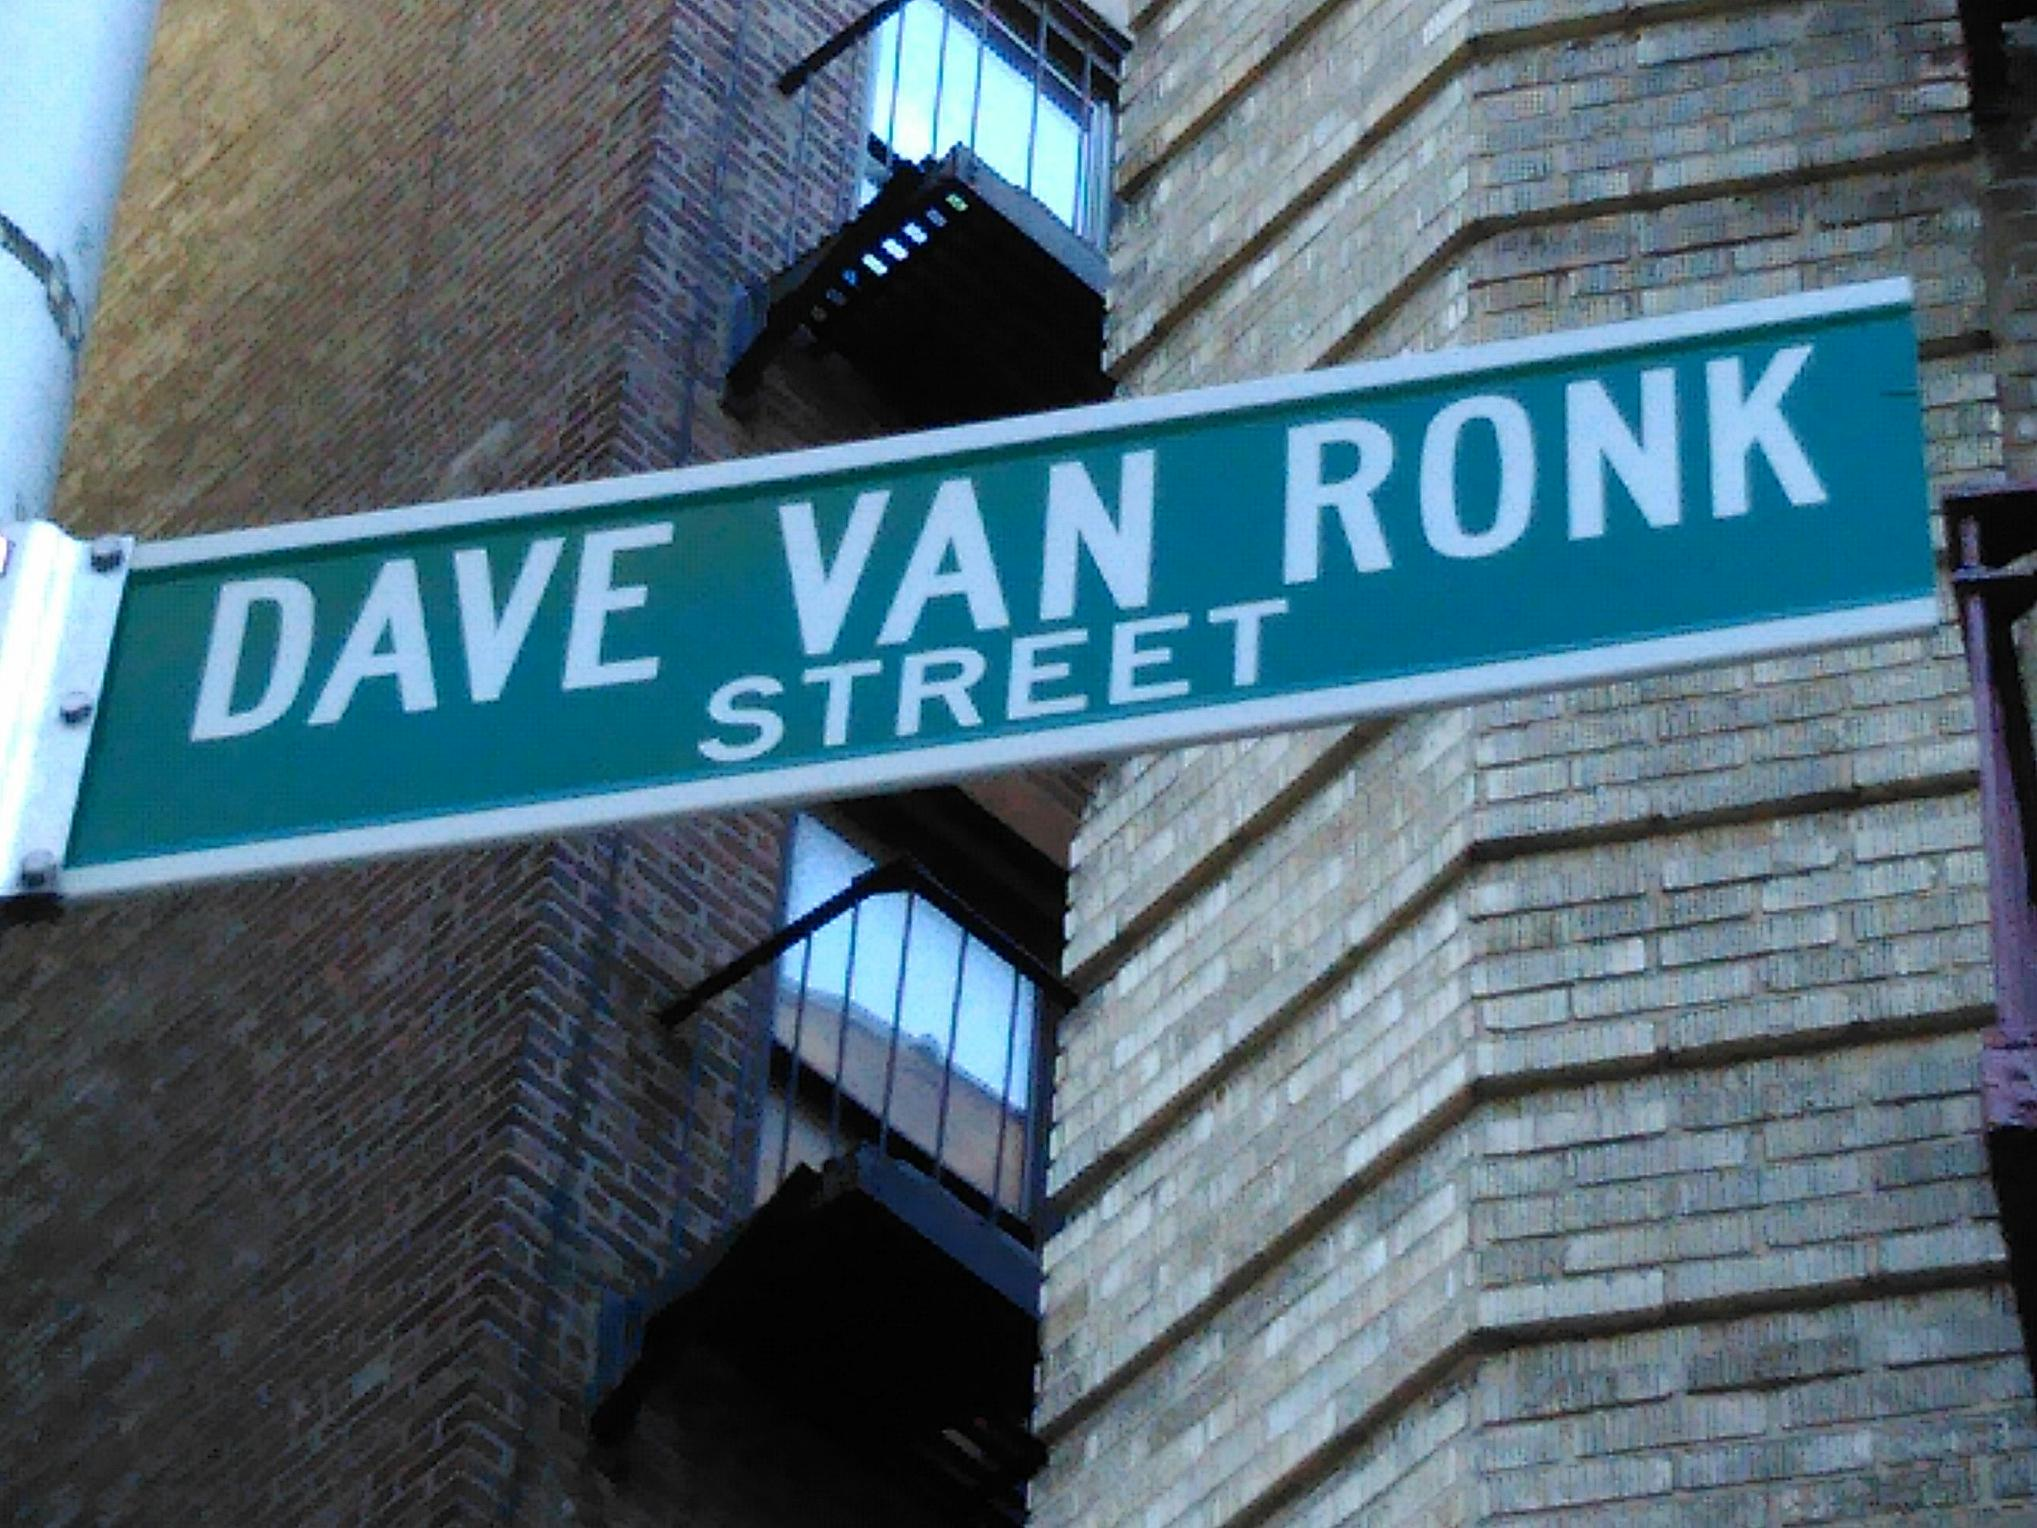 A section of Washington Place was renamed for the Village folk legend in 2004. Van Ronk died in 2002.